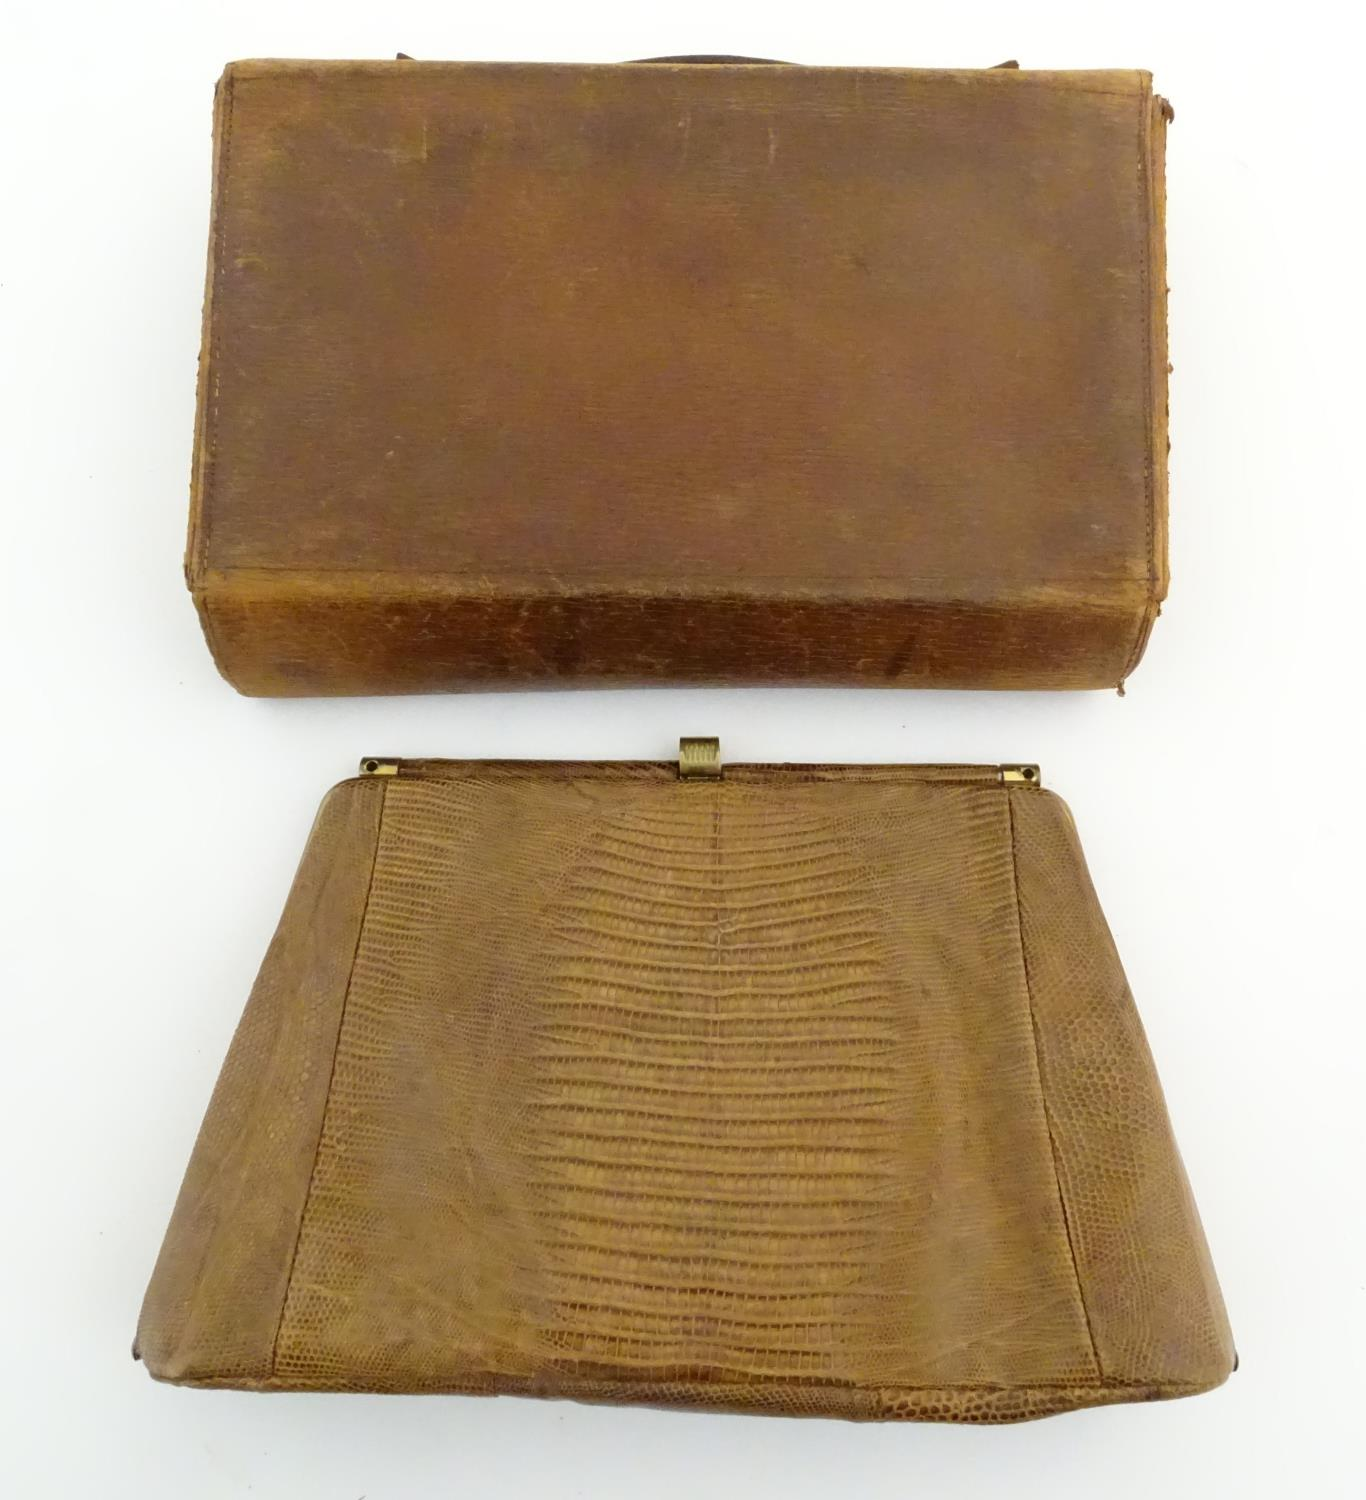 Lot 739 - A late 19thC / early 20thC pig skin travelling vanity case of satchel form with blue leather lining,